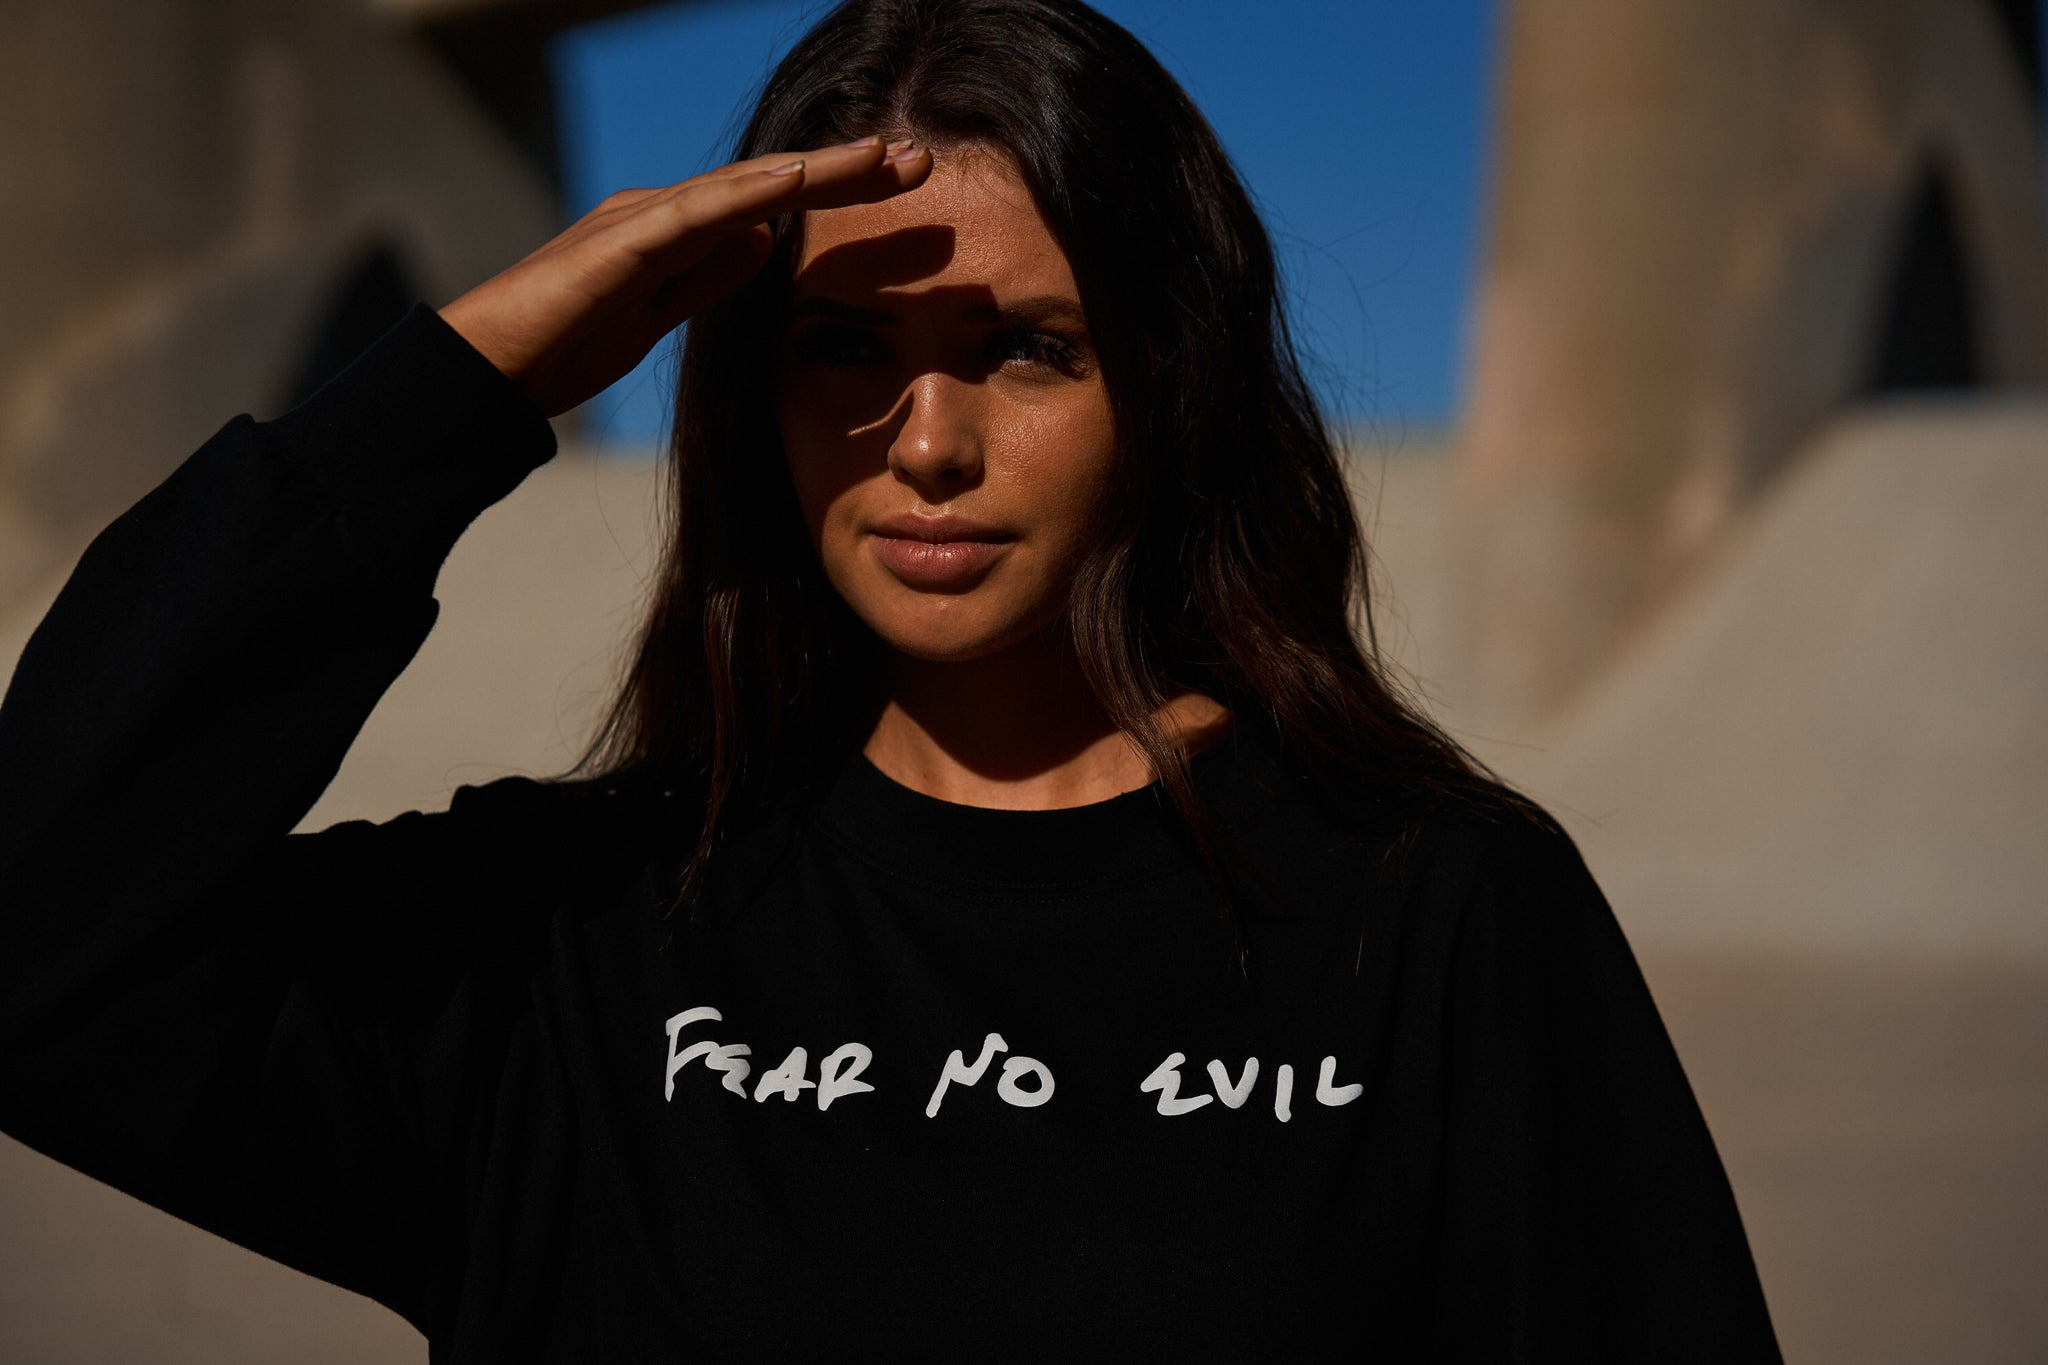 Fear No Evil Long Sleeve